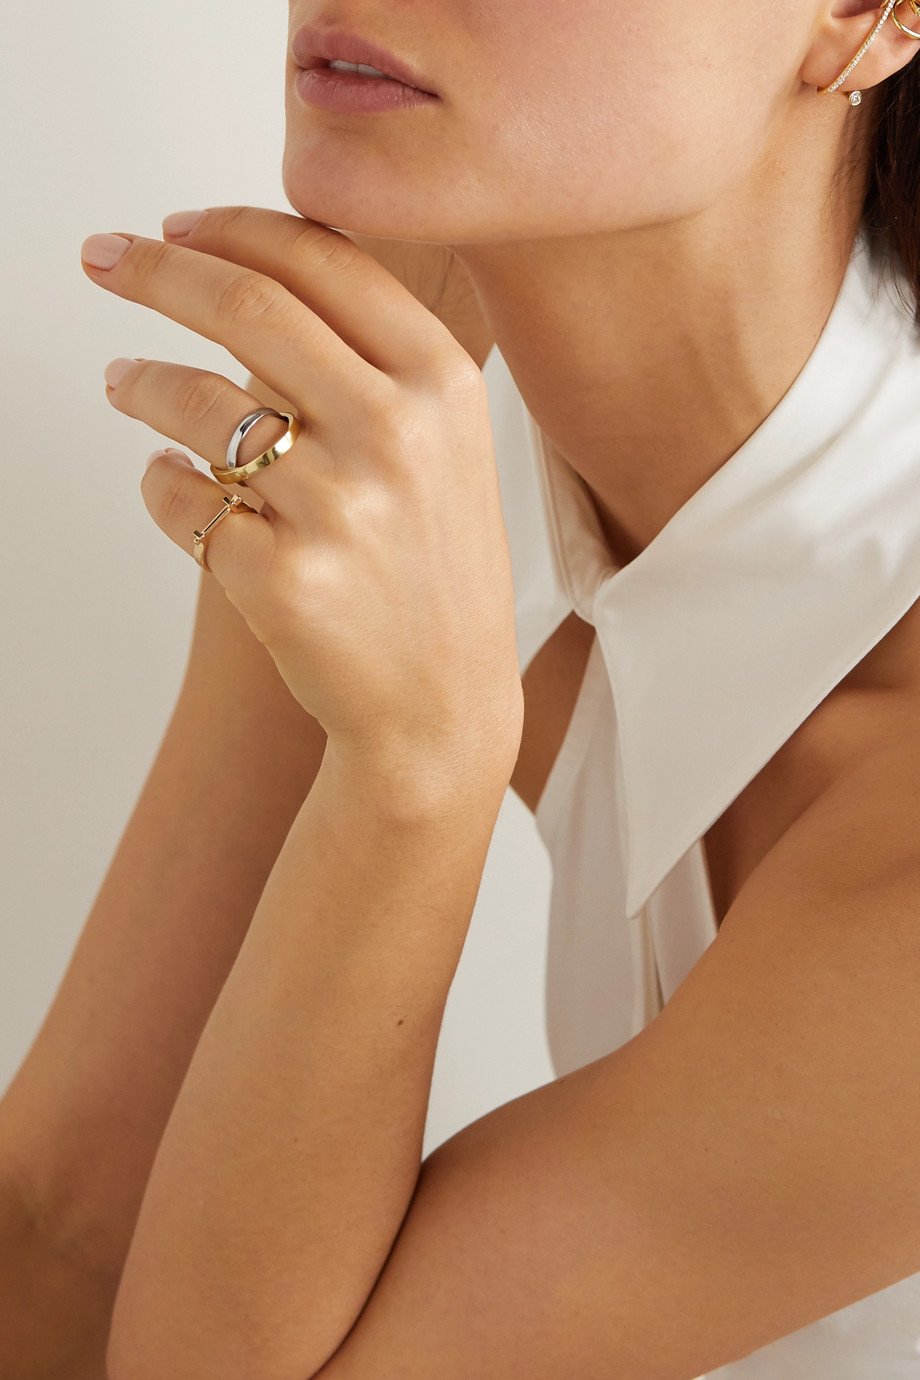 KATKIM Echo 18-karat white and yellow gold ring